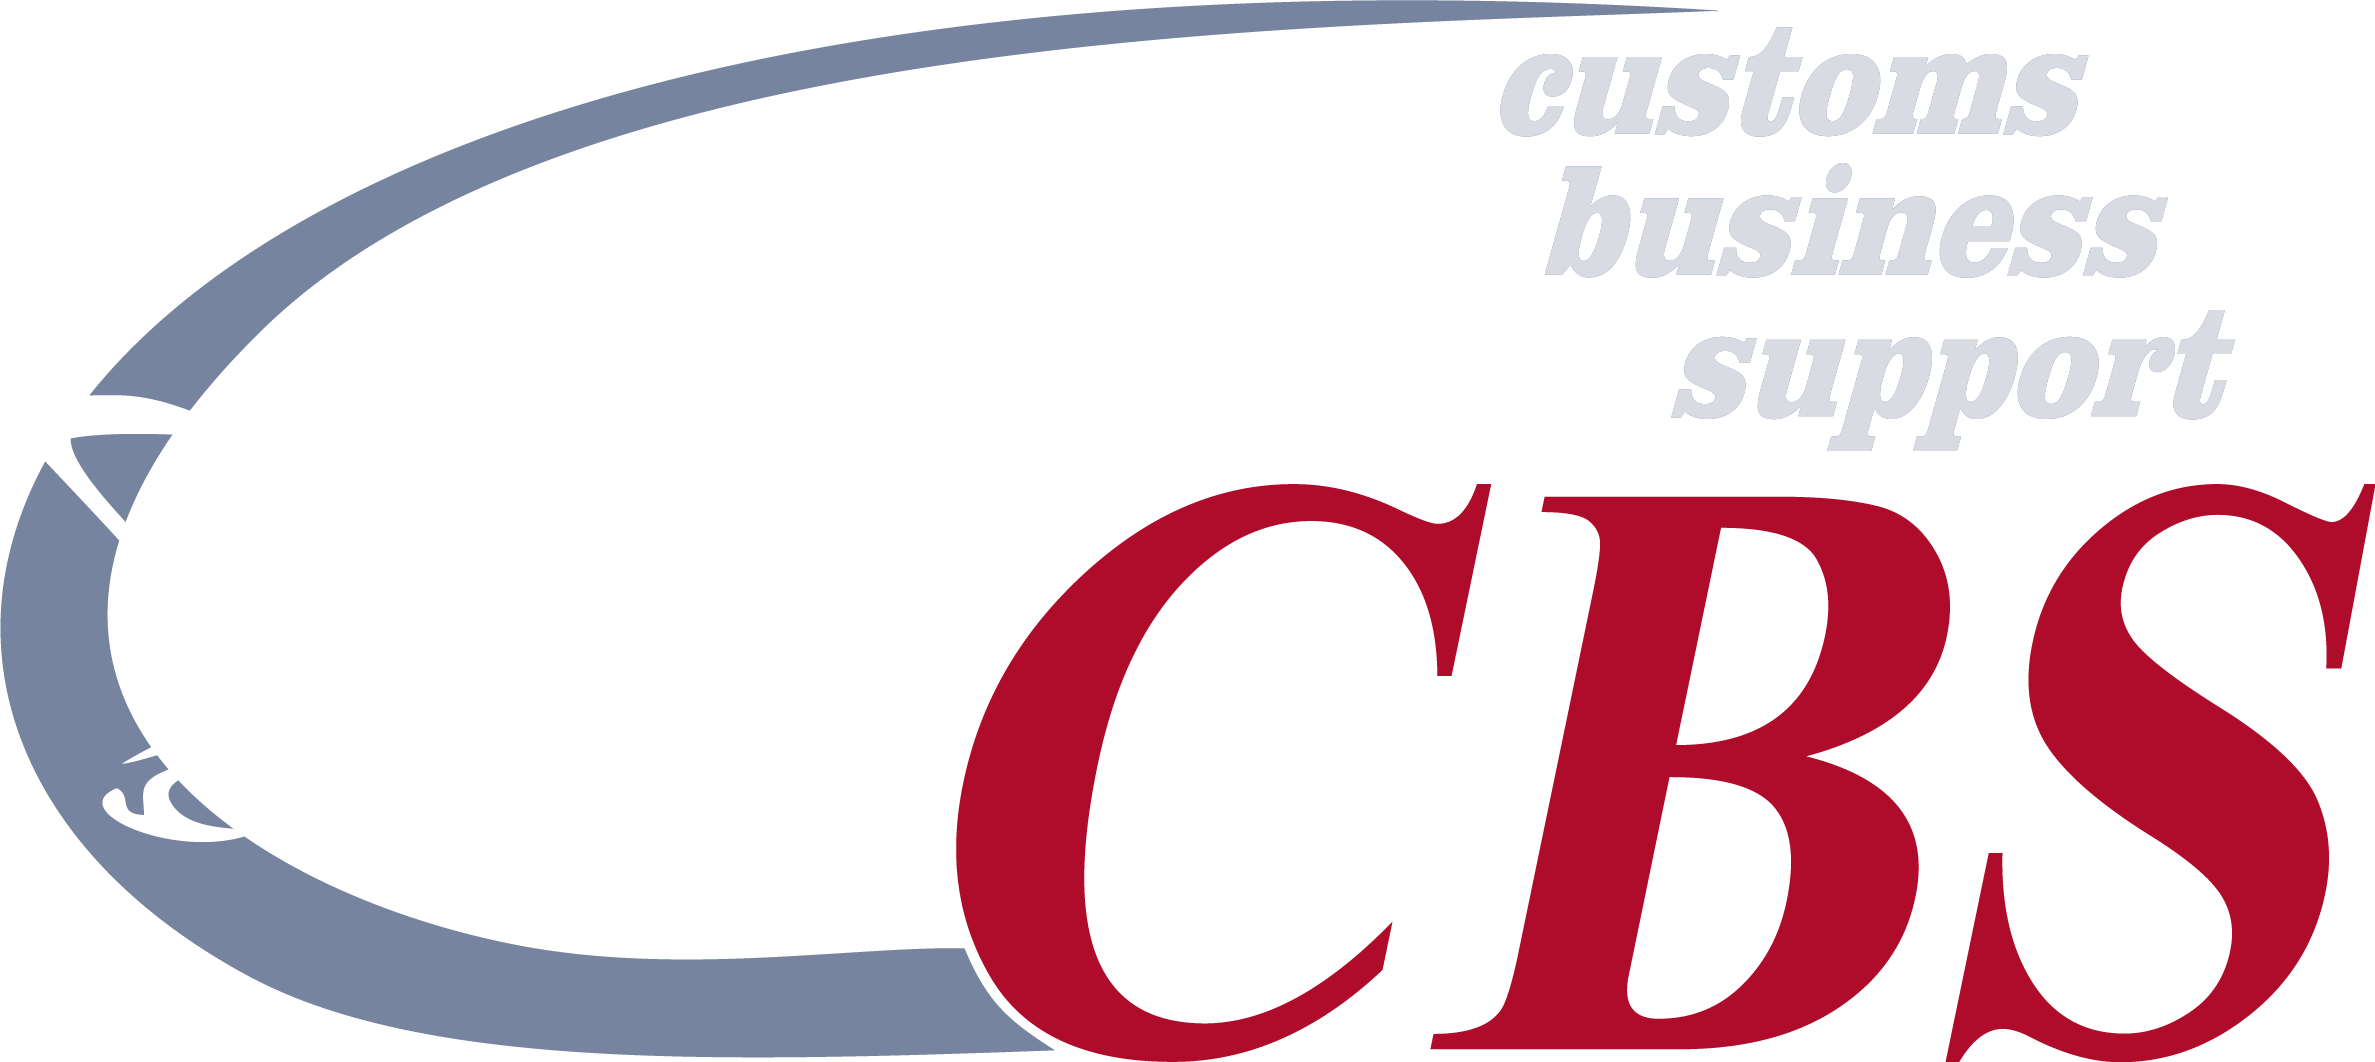 Customs clearance frames illustrations. Evidence clipart auditor report